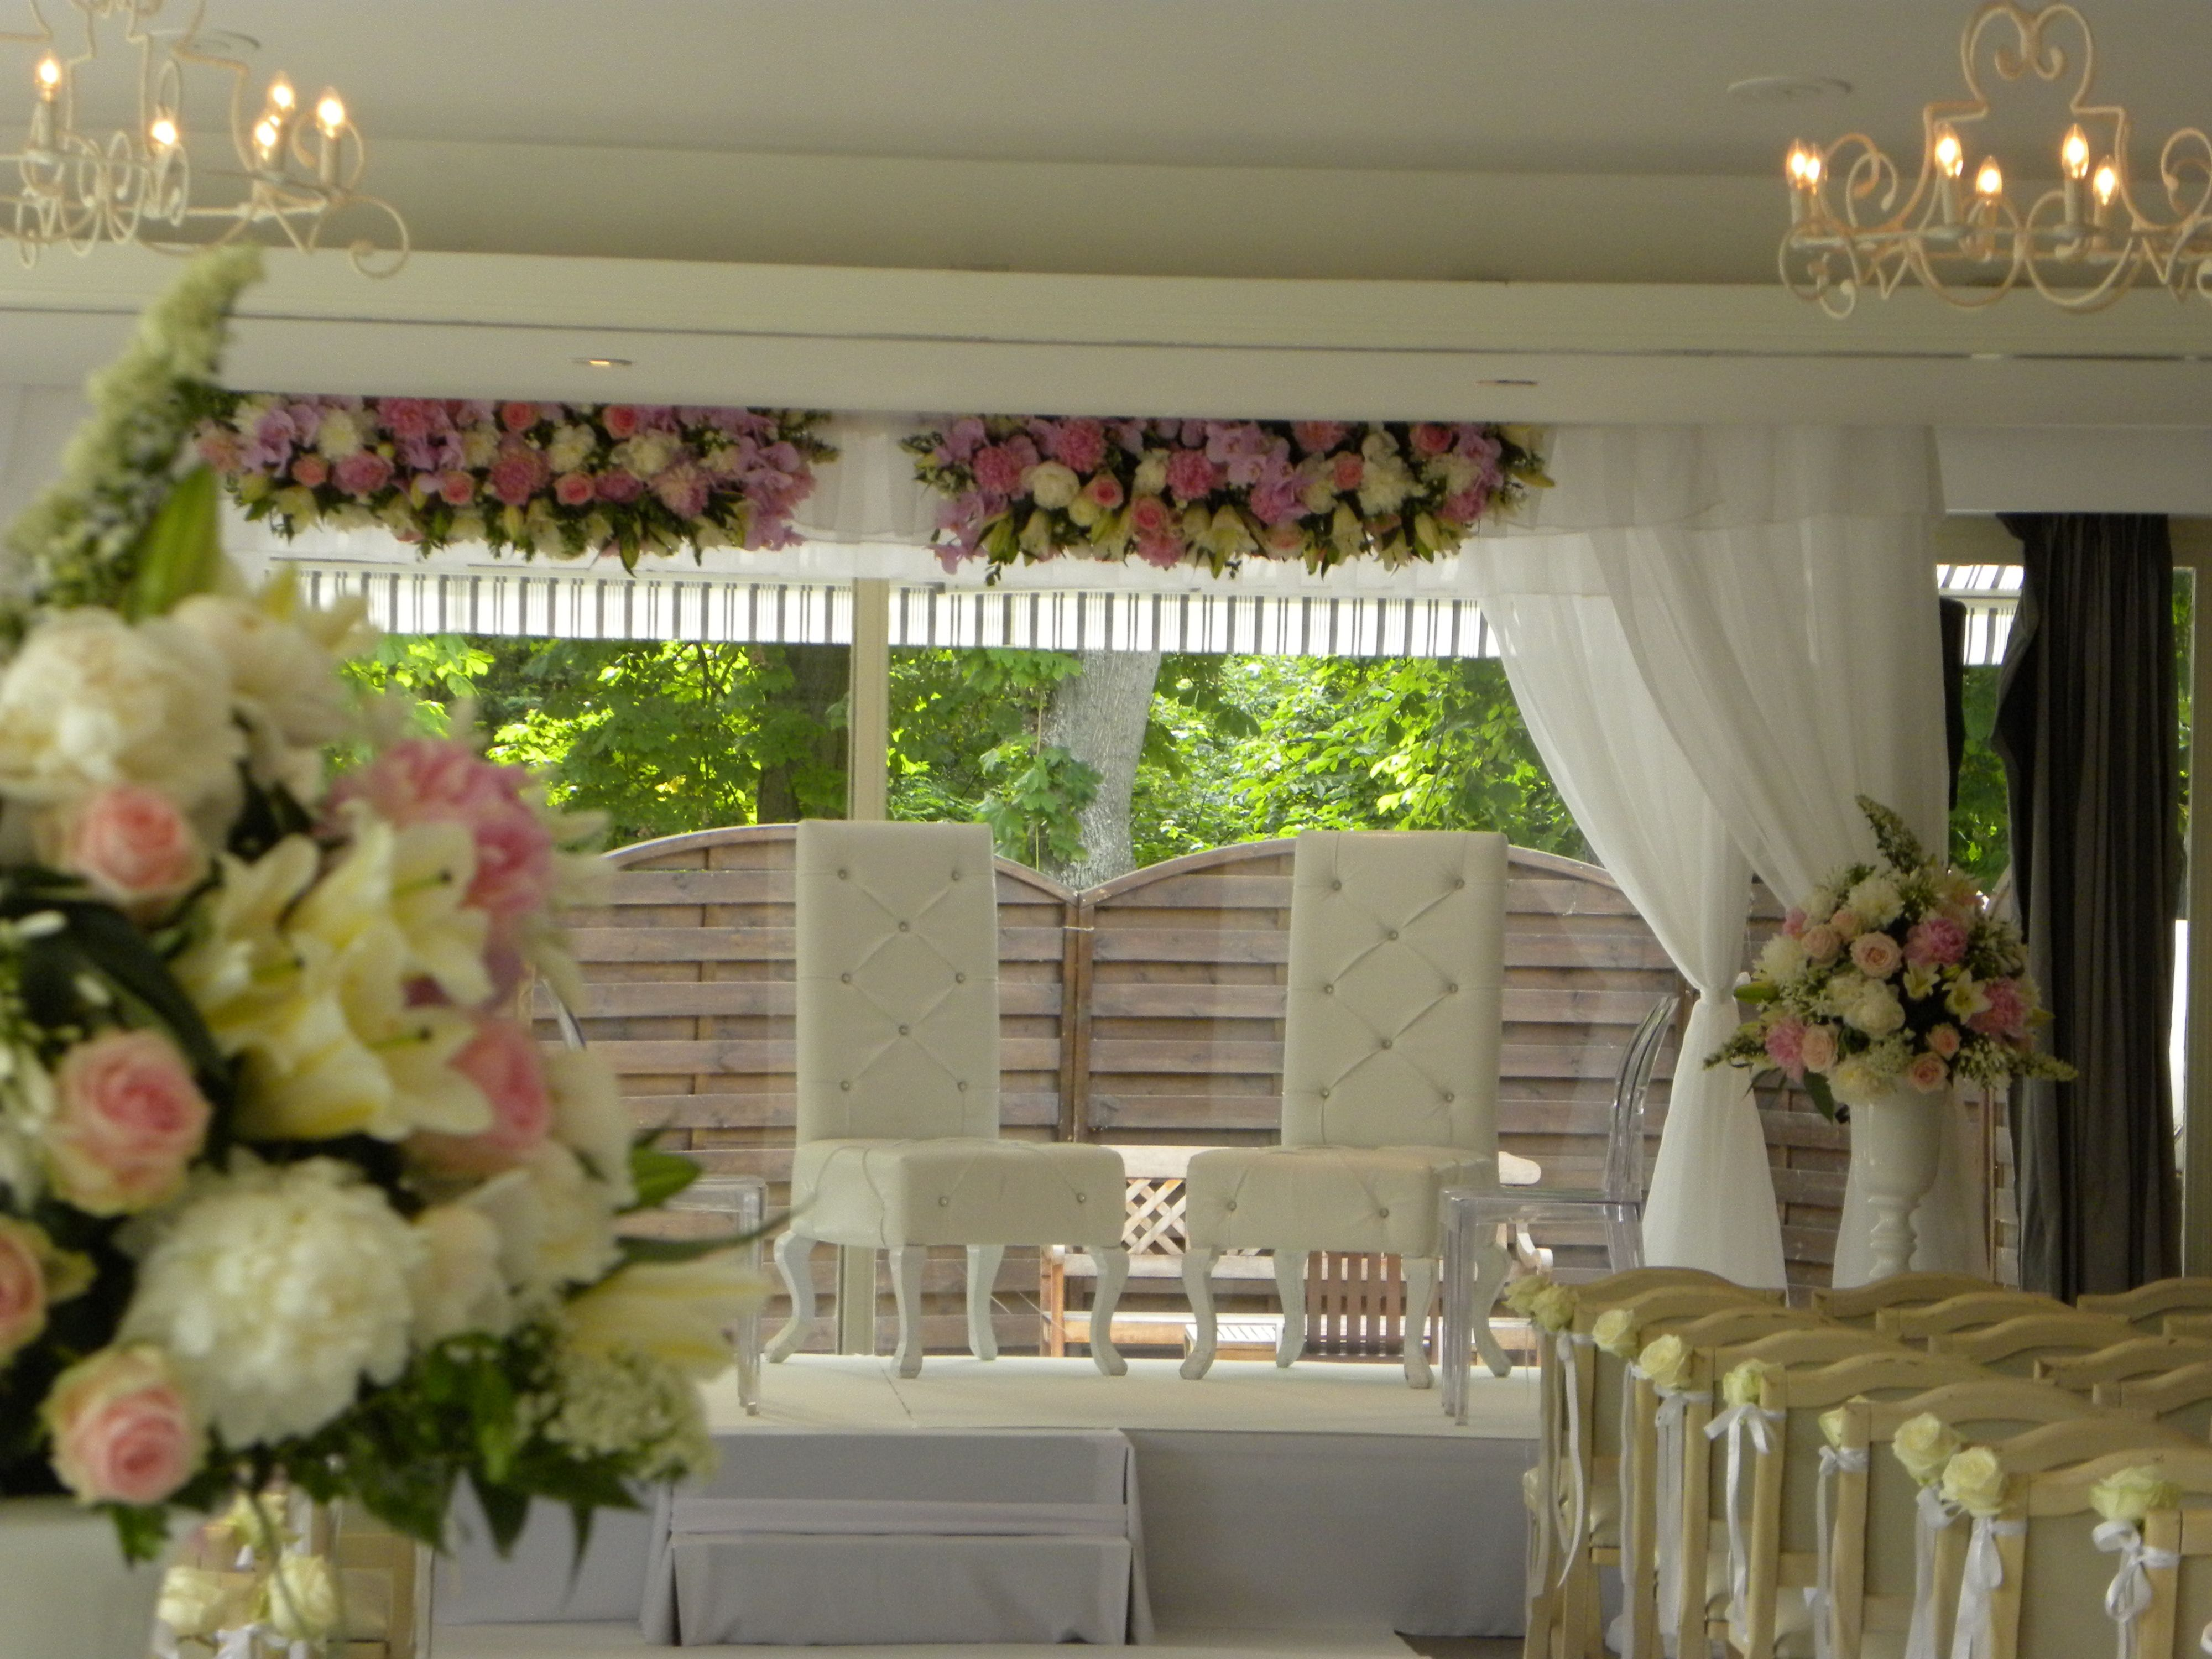 chuppah for the interfaith jewish wedding of cyrielle aurlien houpa lors du mariage mixte - Wedding Planner Mariage Mixte